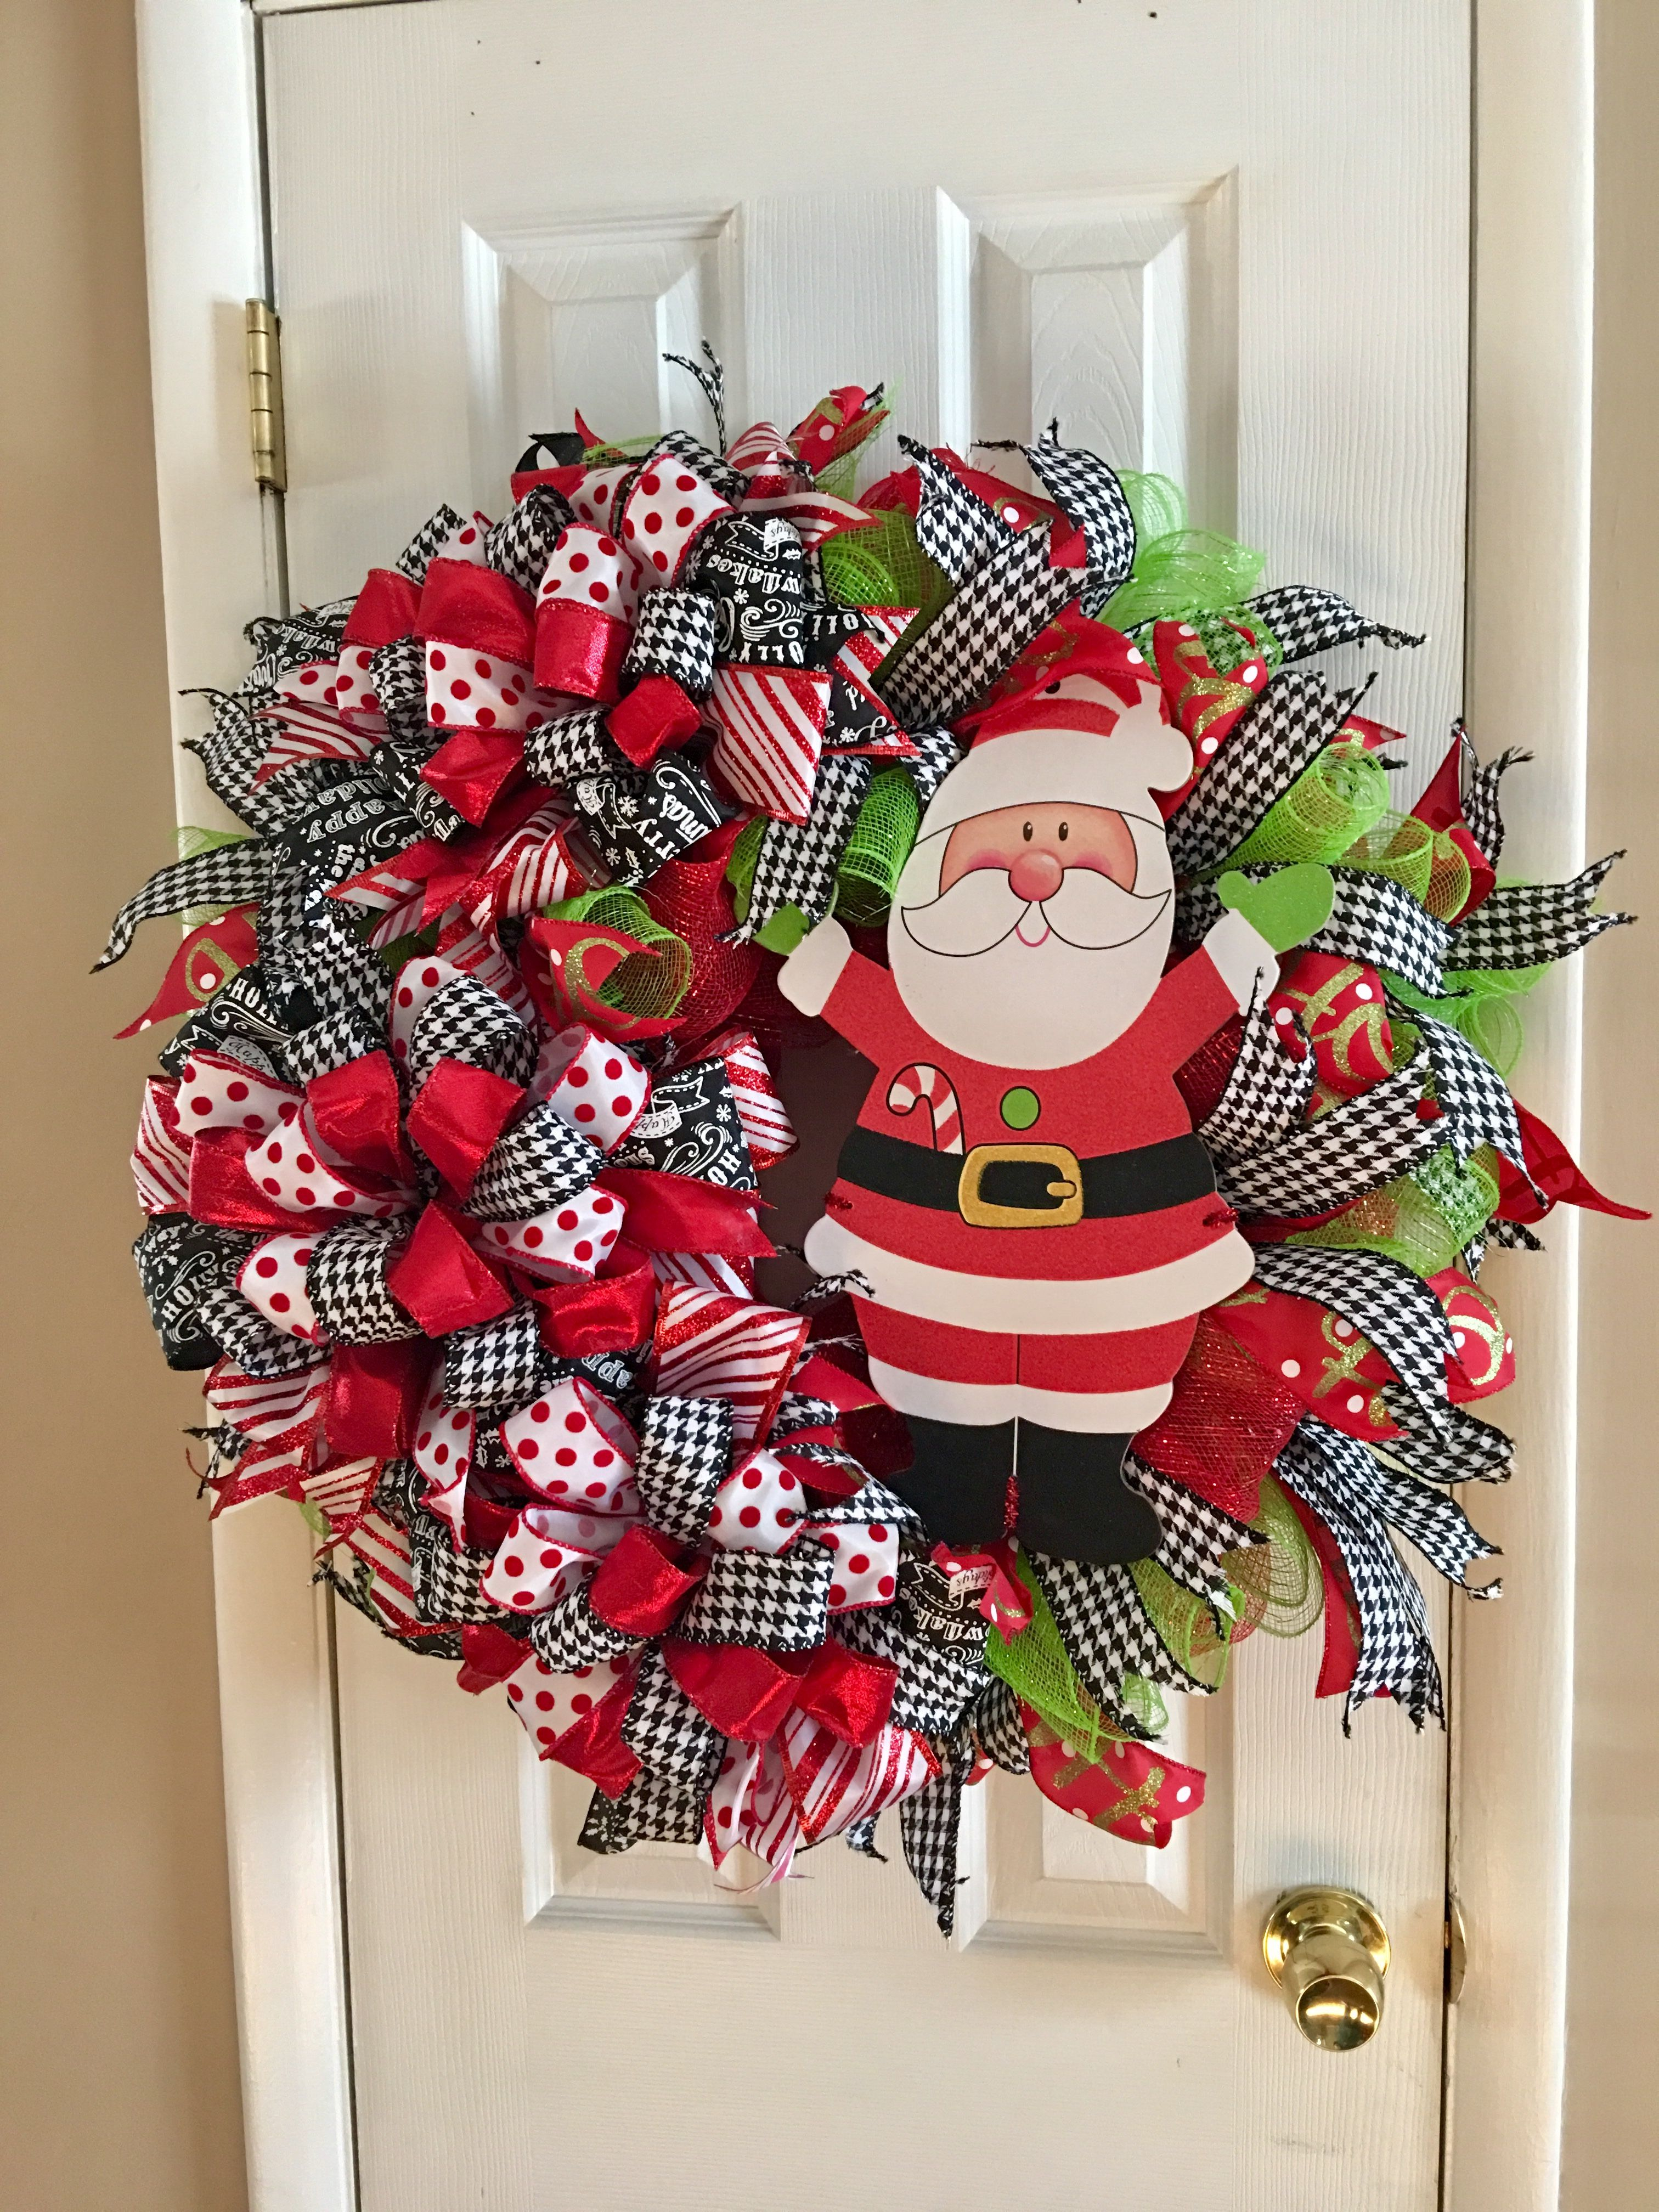 I Made This Cute Santa Christmas Wreath Made With Deco Mesh And Lots Of Ribbons Mesh Ribbon Wreaths Wreath Crafts Wreaths